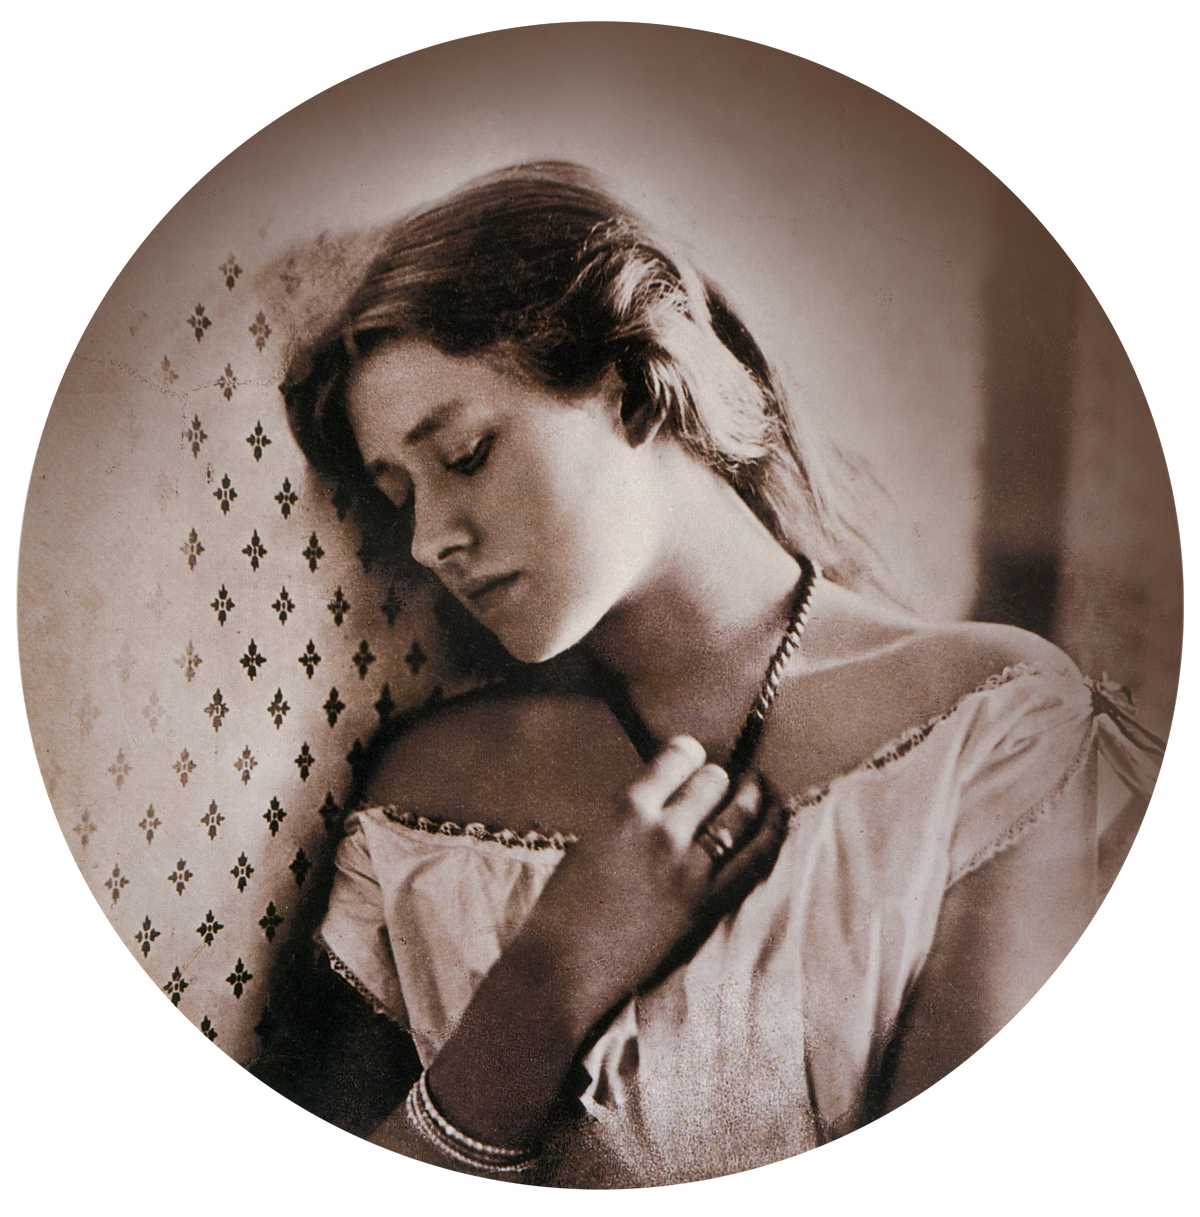 Image courtesy of Julia Margaret Cameron and linked to originating site